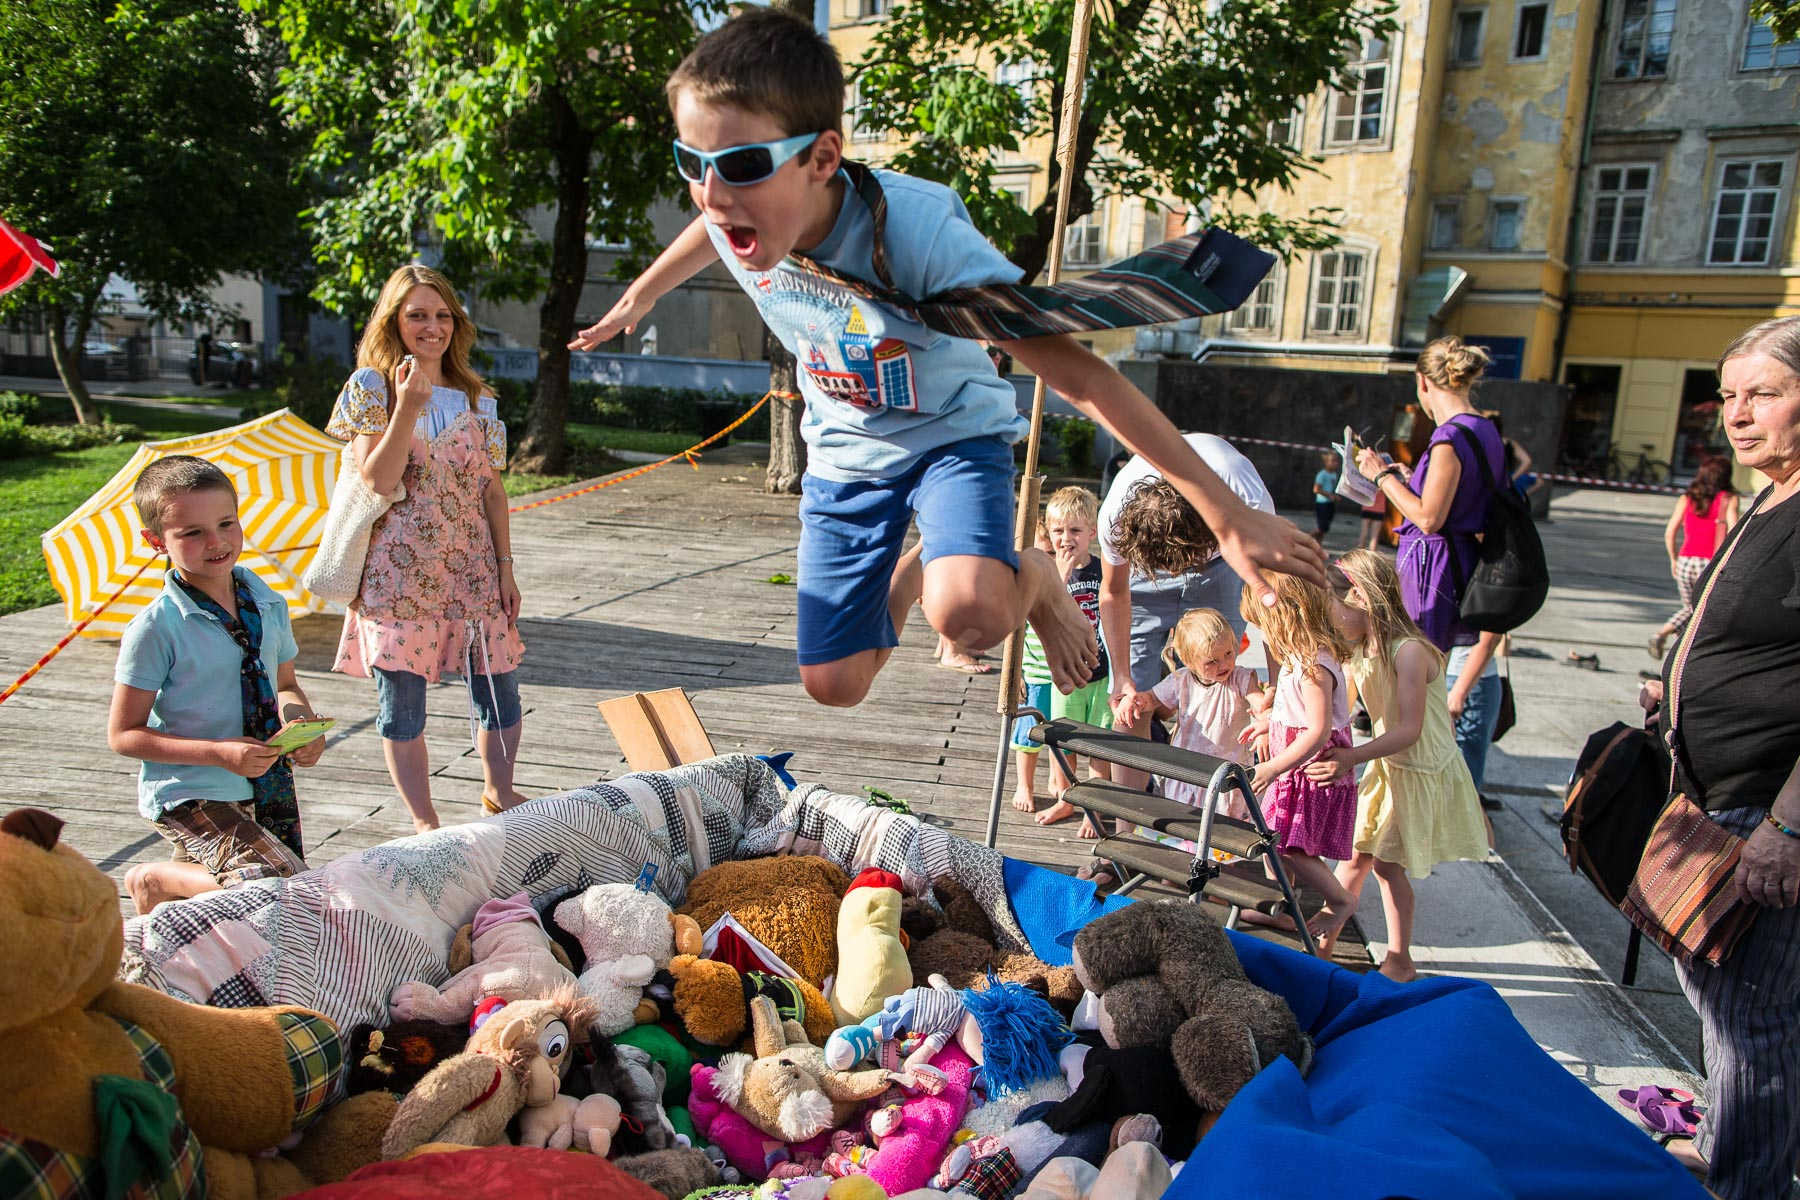 A boy jumps into a pool of plush toys at the 20th annual Ana Desetnica International Street Theatre Festival in Ljubljana, Slovenia, July 5 2017.